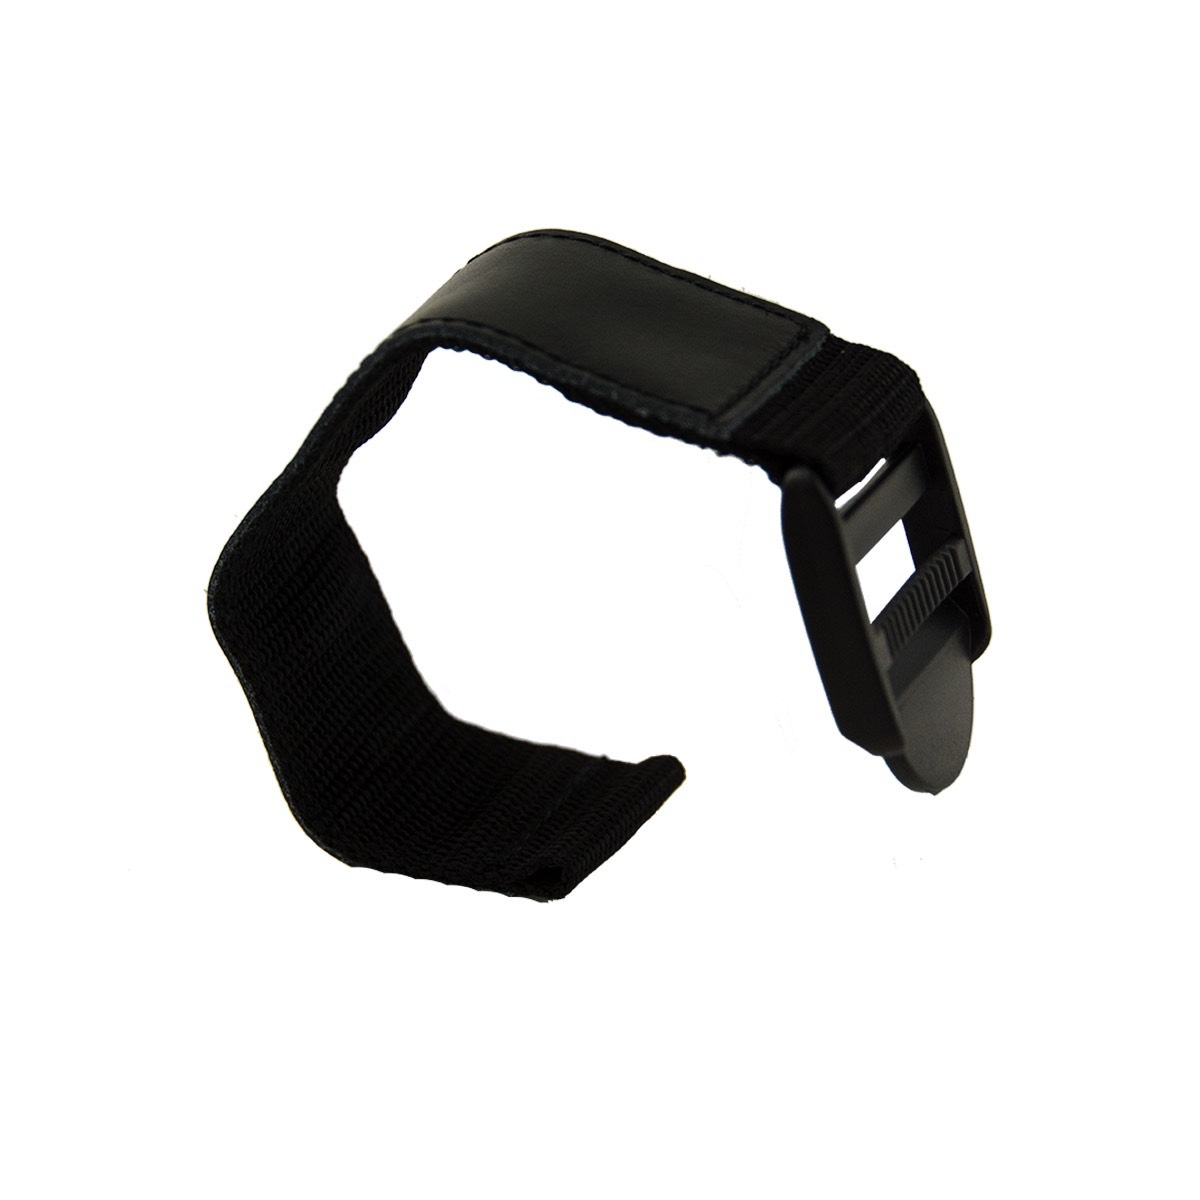 8005-0071, Compact Buckle Armstrap for SDC 2300